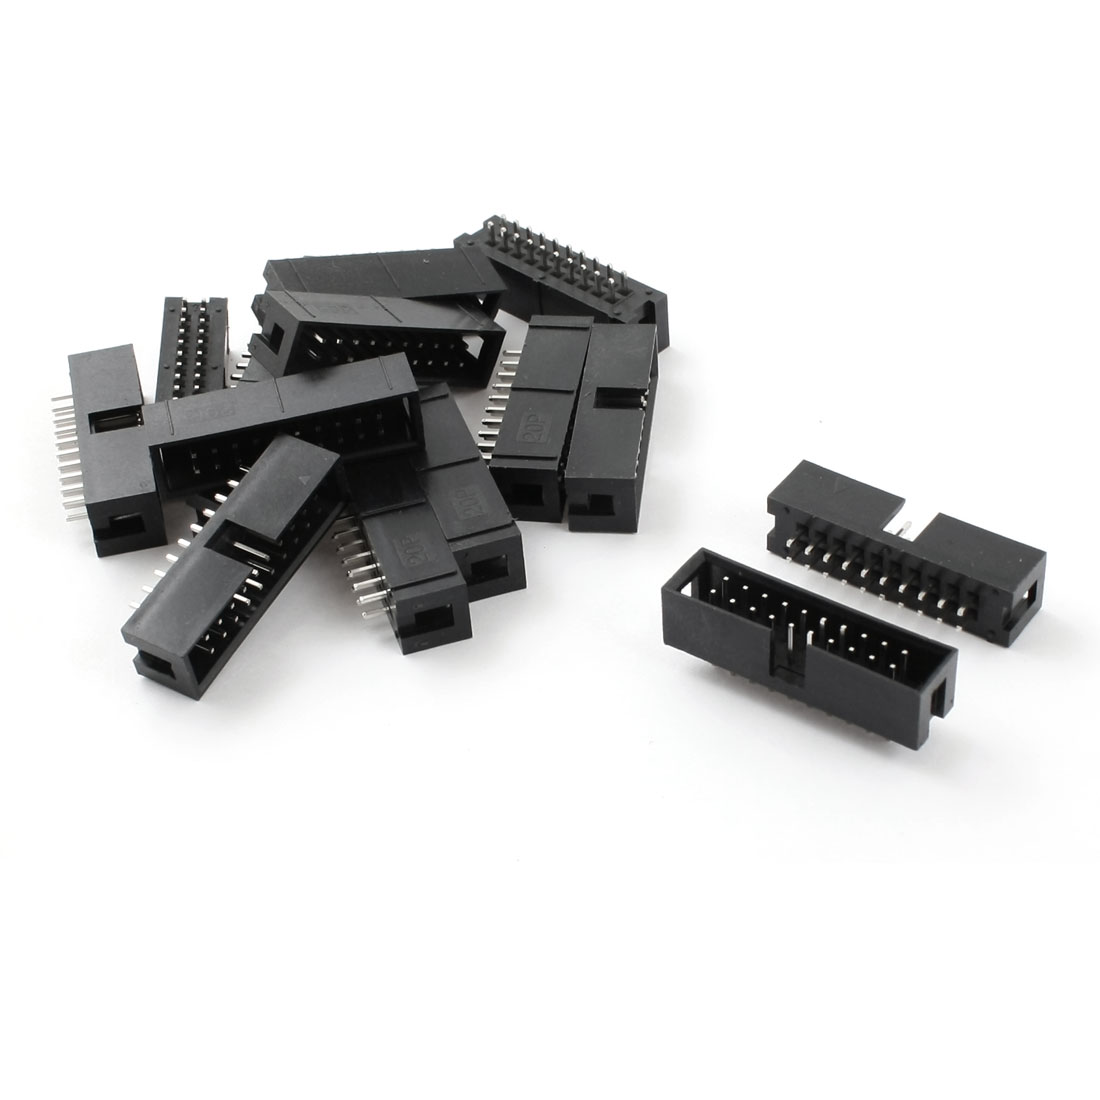 15 Pcs 2 Row 20 Pin 2.54MM DC3-20P Straight JTAG Socket Connector Black for Flat Ribbon Cable